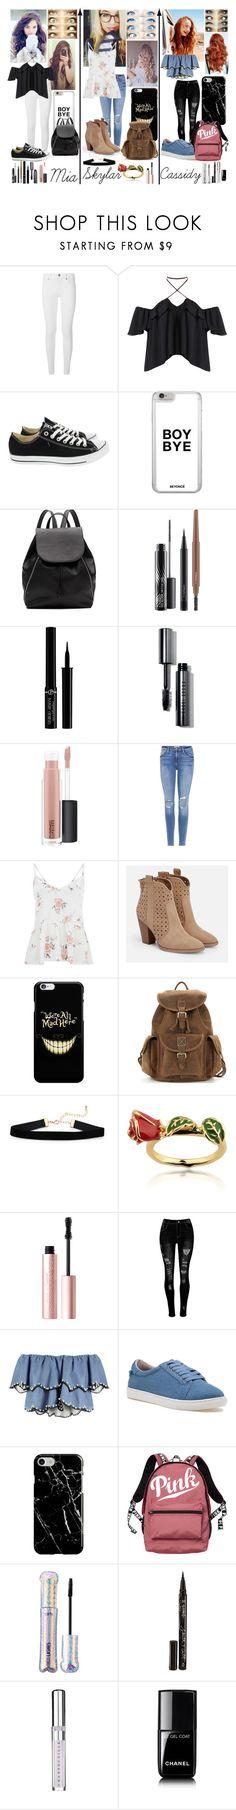 """""""Please, don't ever grow up (Highschool)"""" by frootloop16 ❤ liked on Polyvore featuring Burberry, Converse, Witchery, MAC Cosmetics, Giorgio Armani, Bobbi Brown Cosmetics, Frame, JustFab, Disney and Too Faced Cosmetics"""